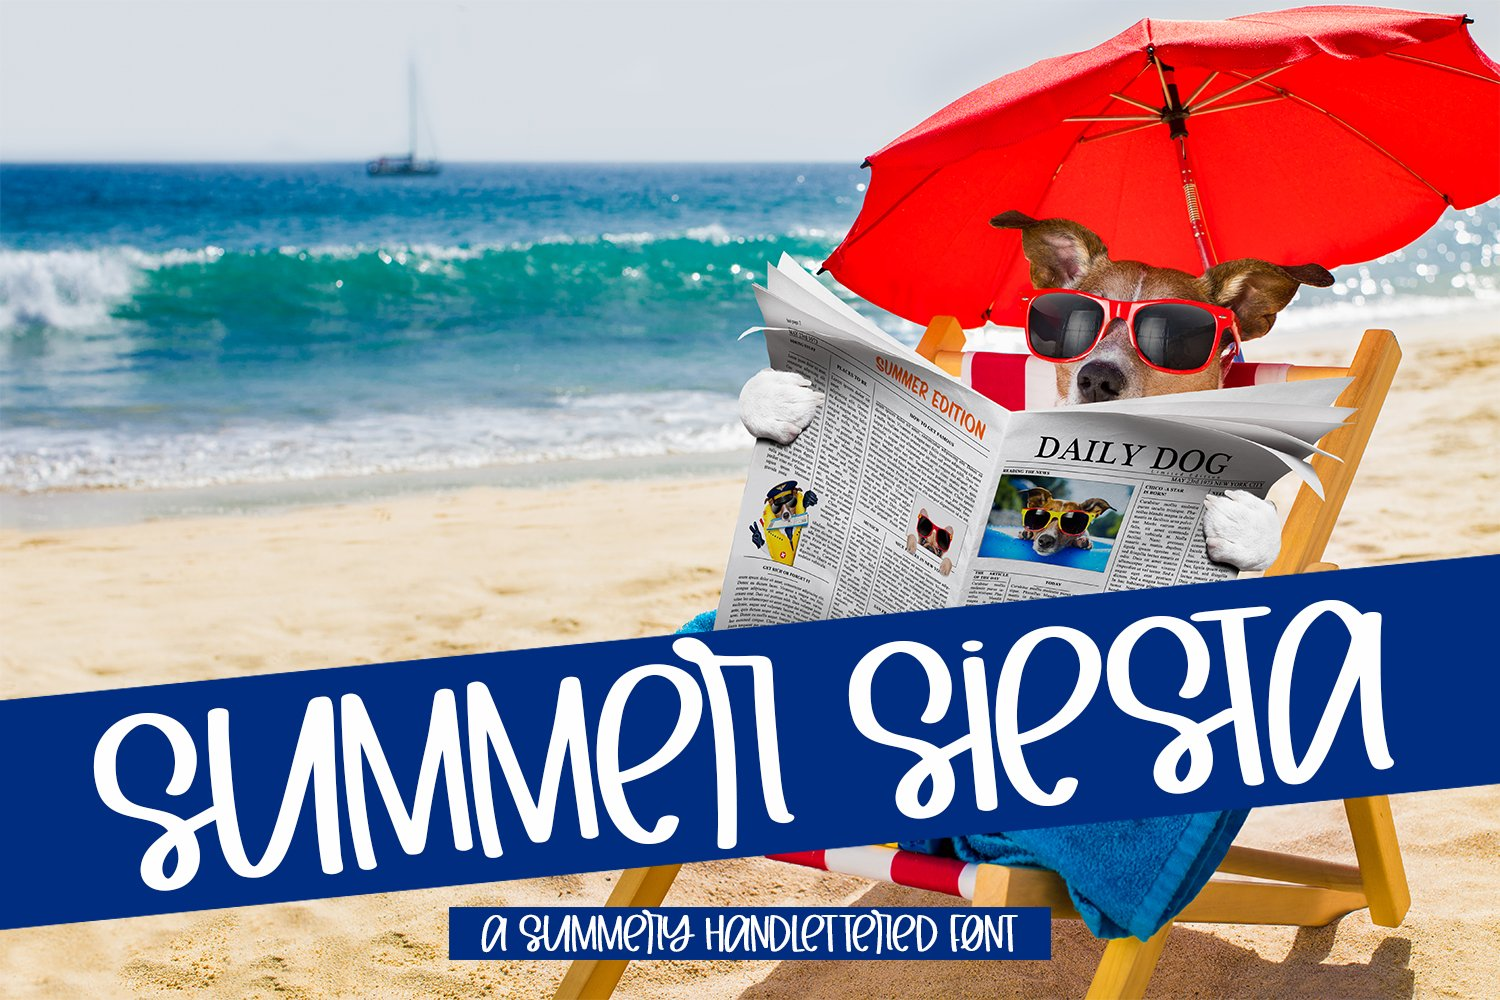 Summer Siesta - A Summery Hand-Lettered Font example image 1